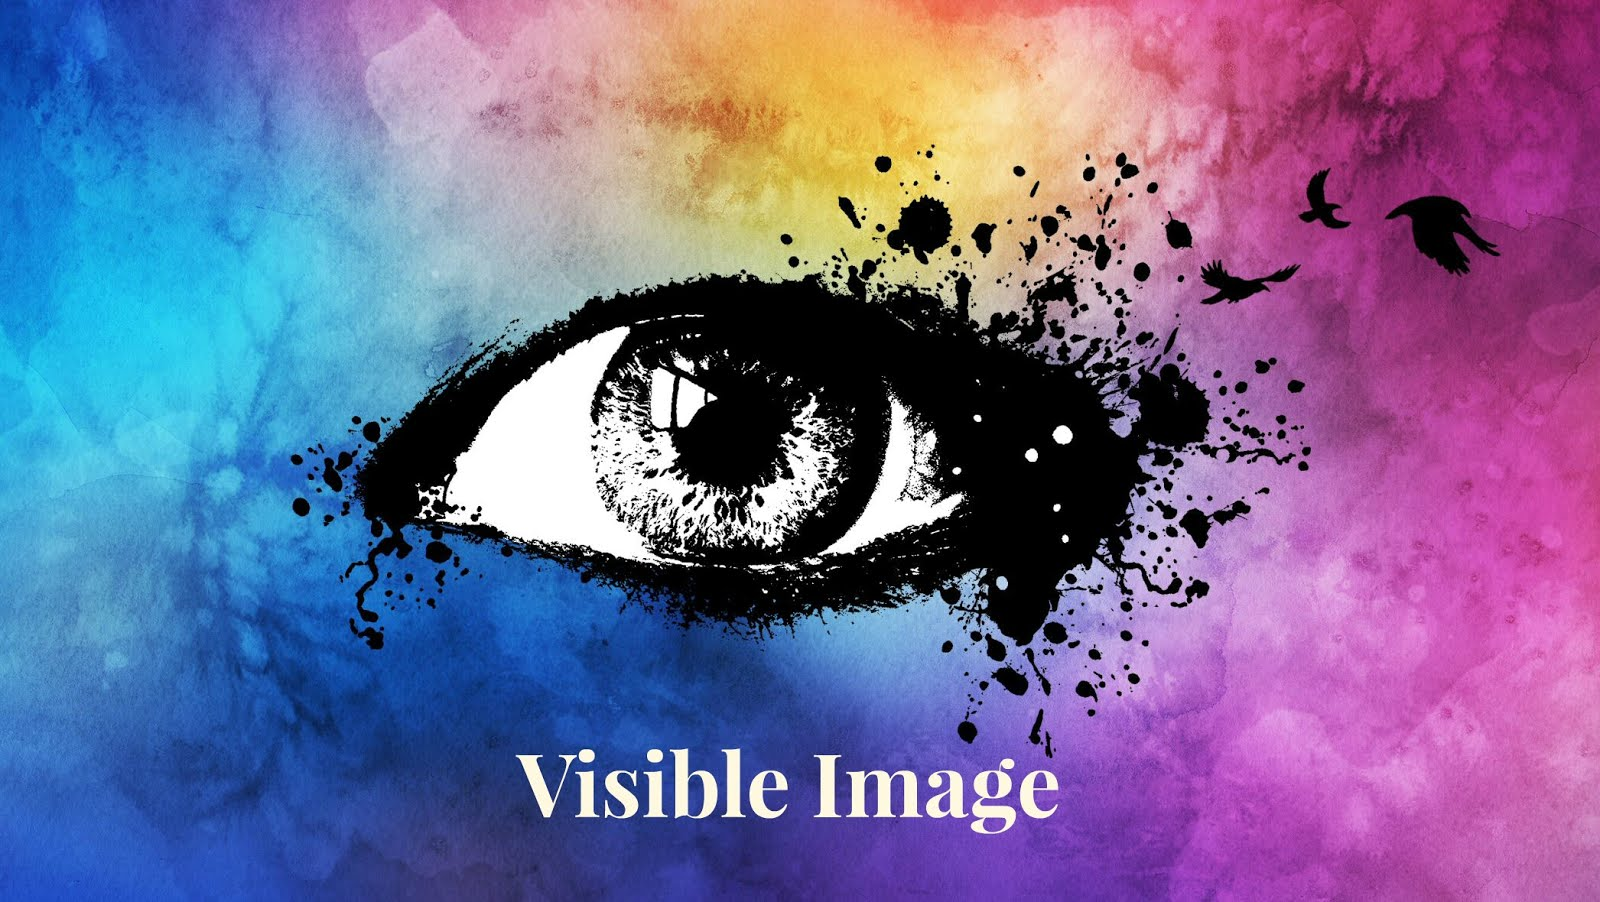 Australian stockist of Visible Image stamps